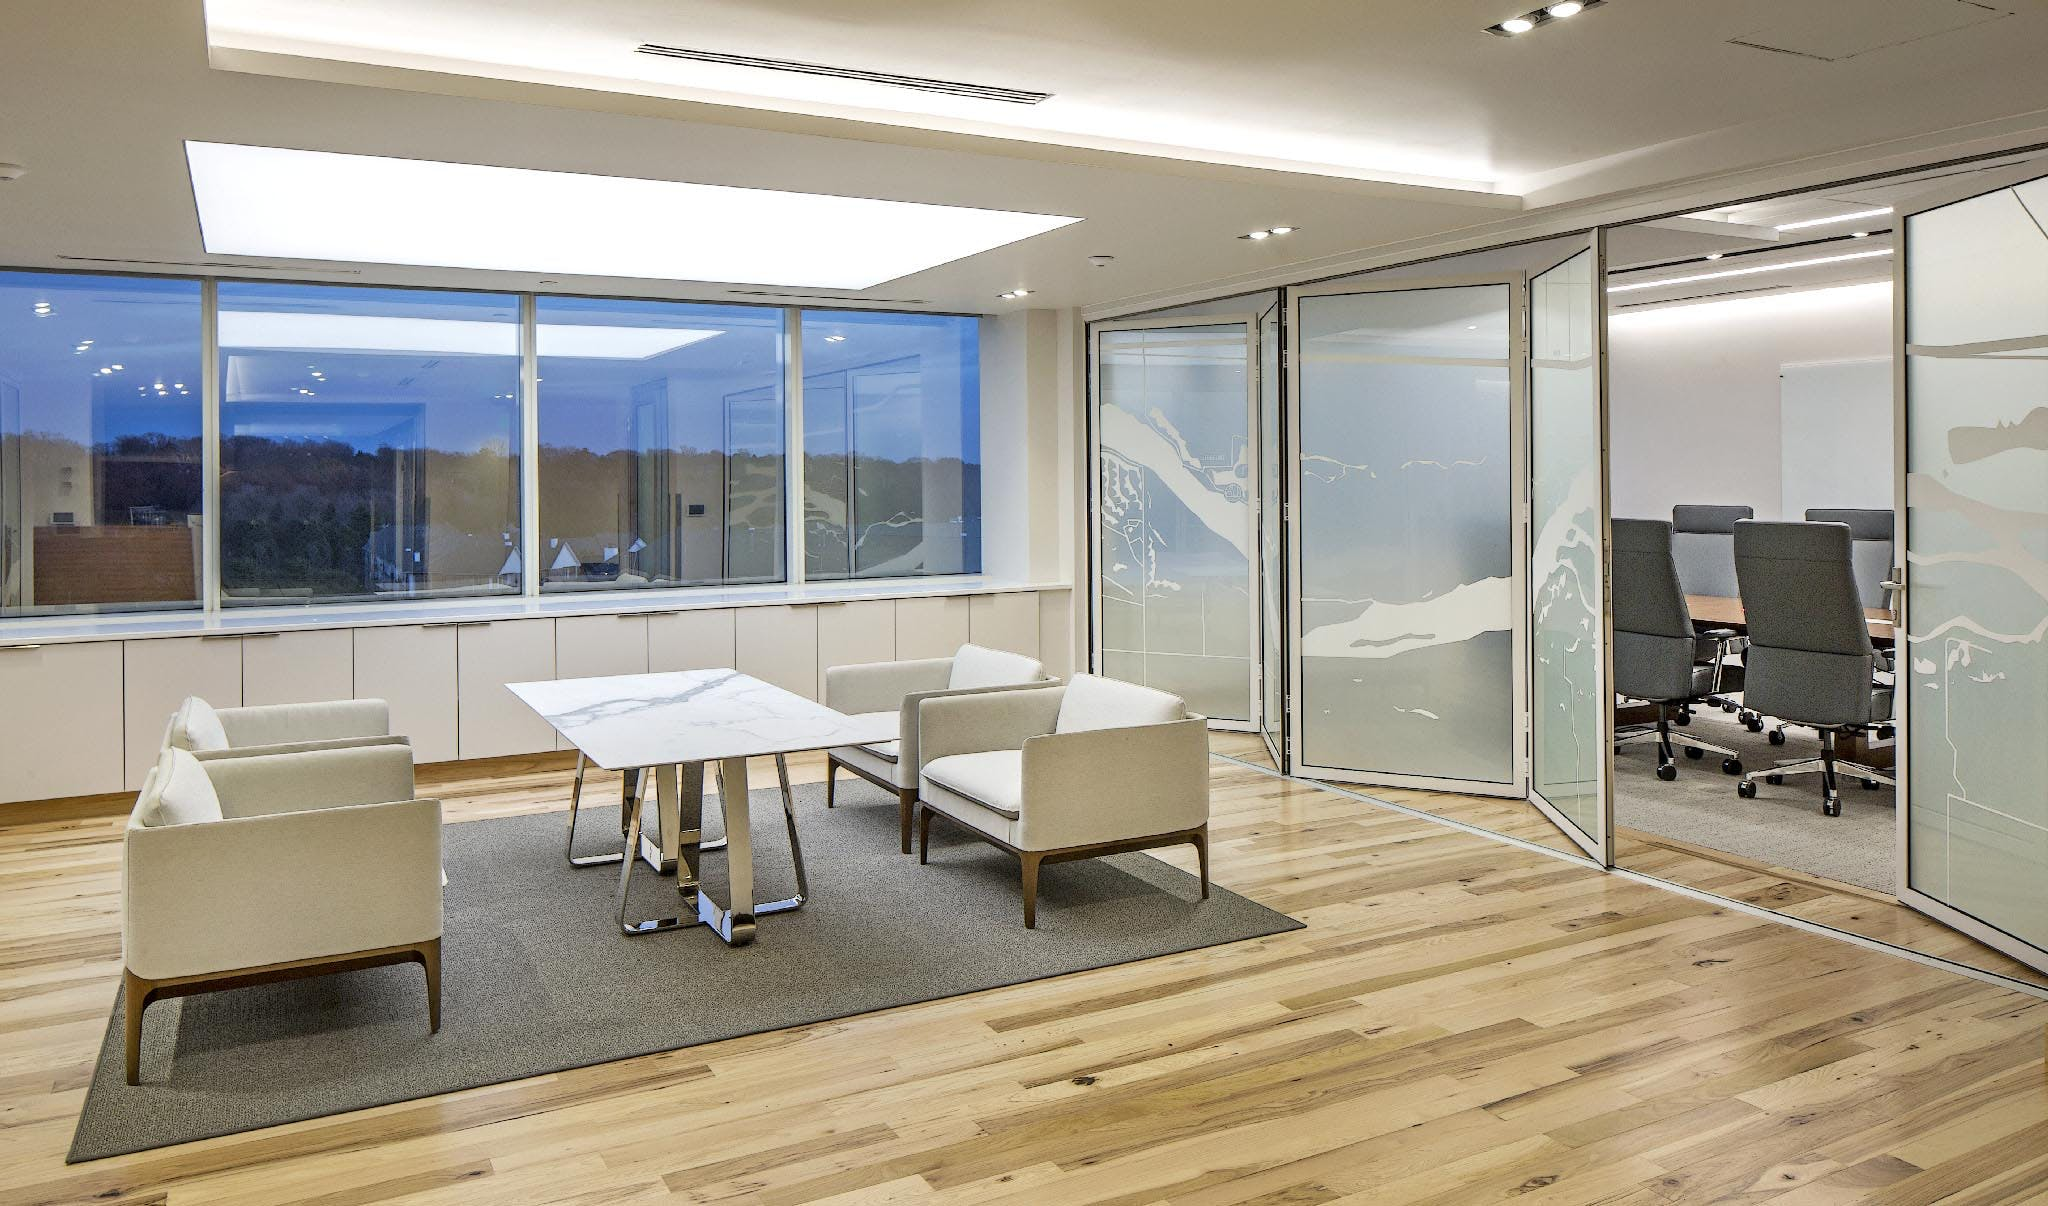 folding interior glass wall system in law office for flexibility between conference room and lobby